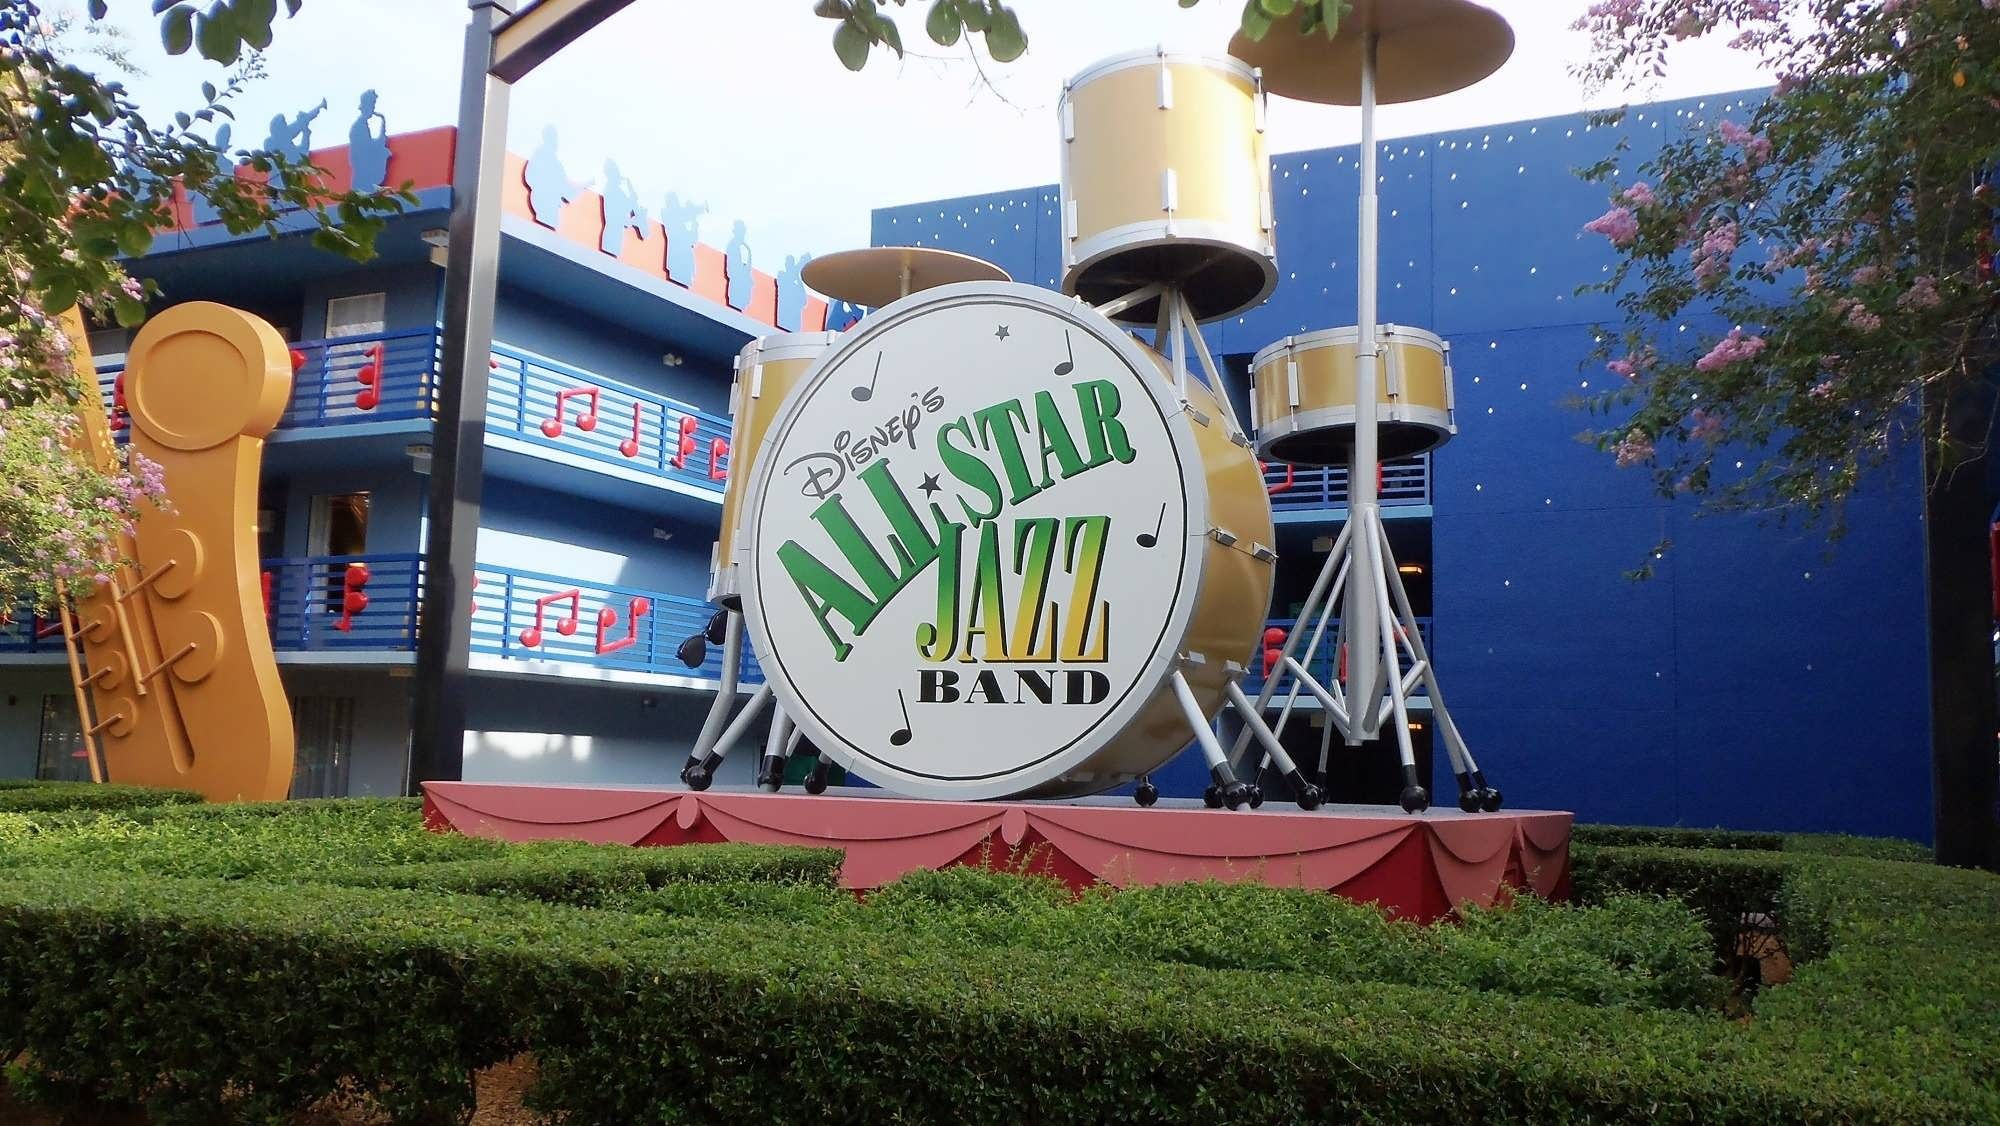 Lazy Boy Sofa Family suites at Disney us All Star Music Resort Better than expected u even the